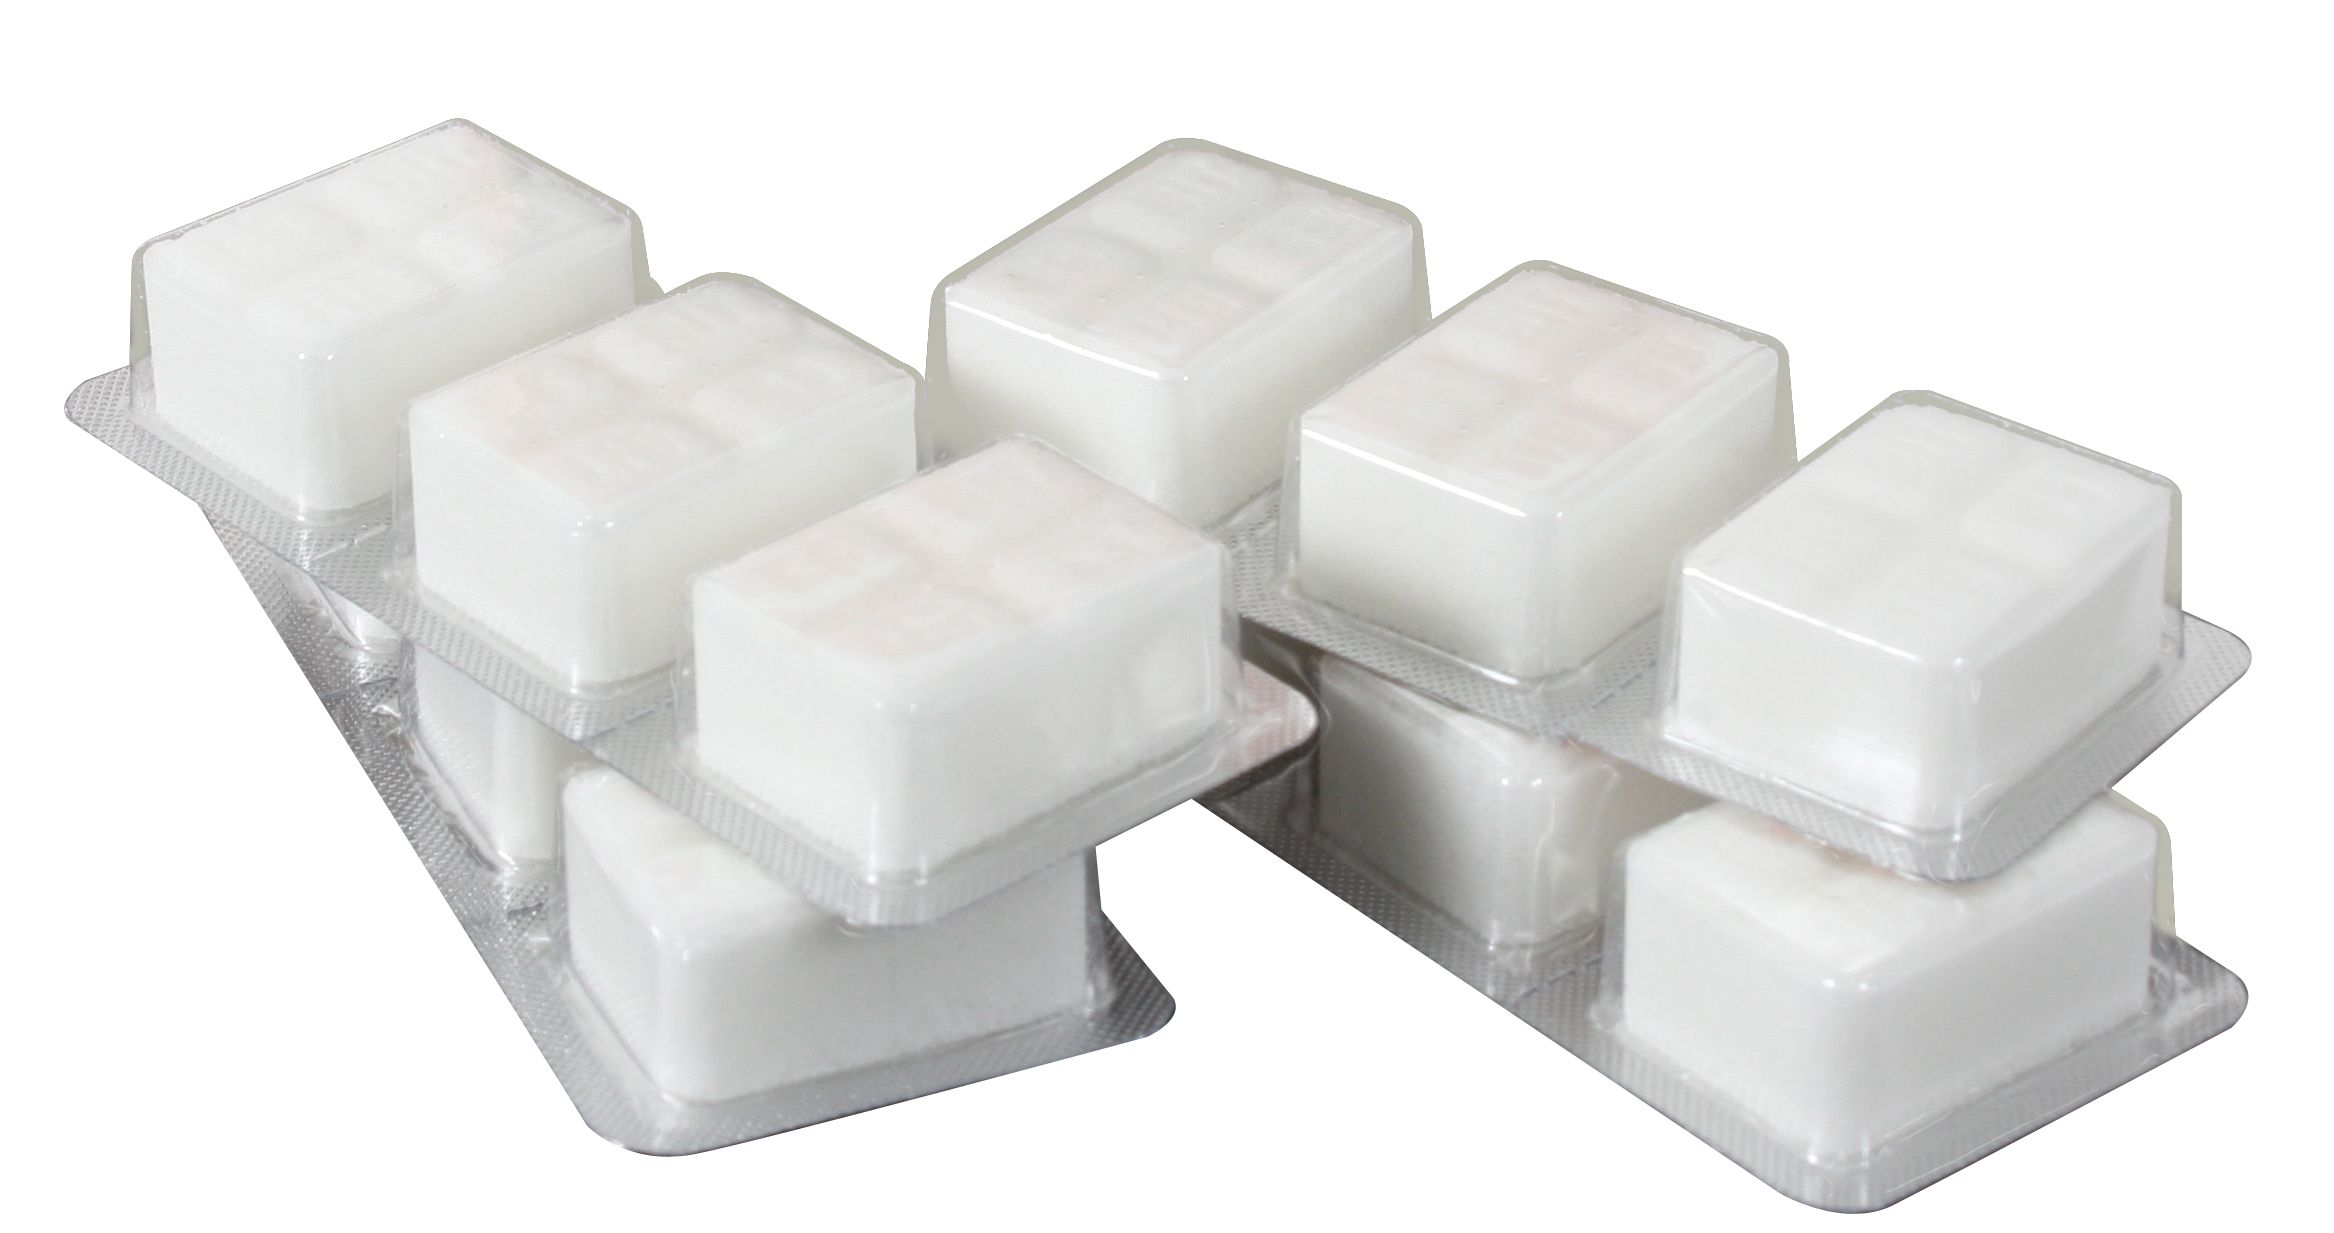 Rothco Esbit Solid Fuel Cubes